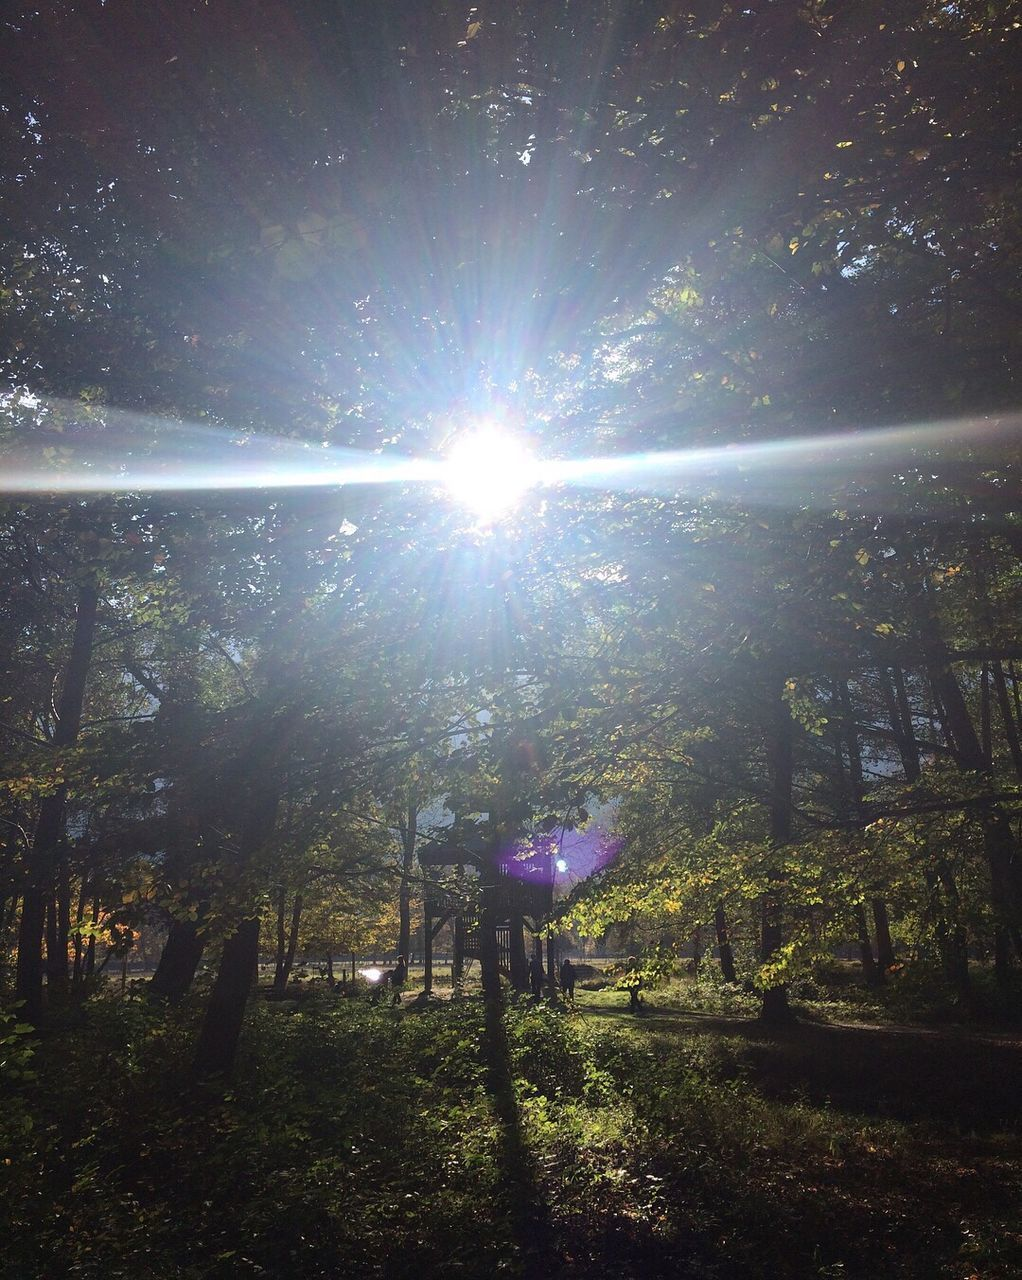 tree, sunbeam, sun, lens flare, sunlight, nature, beauty in nature, tranquility, tranquil scene, growth, forest, scenics, outdoors, no people, day, tree trunk, landscape, branch, sky